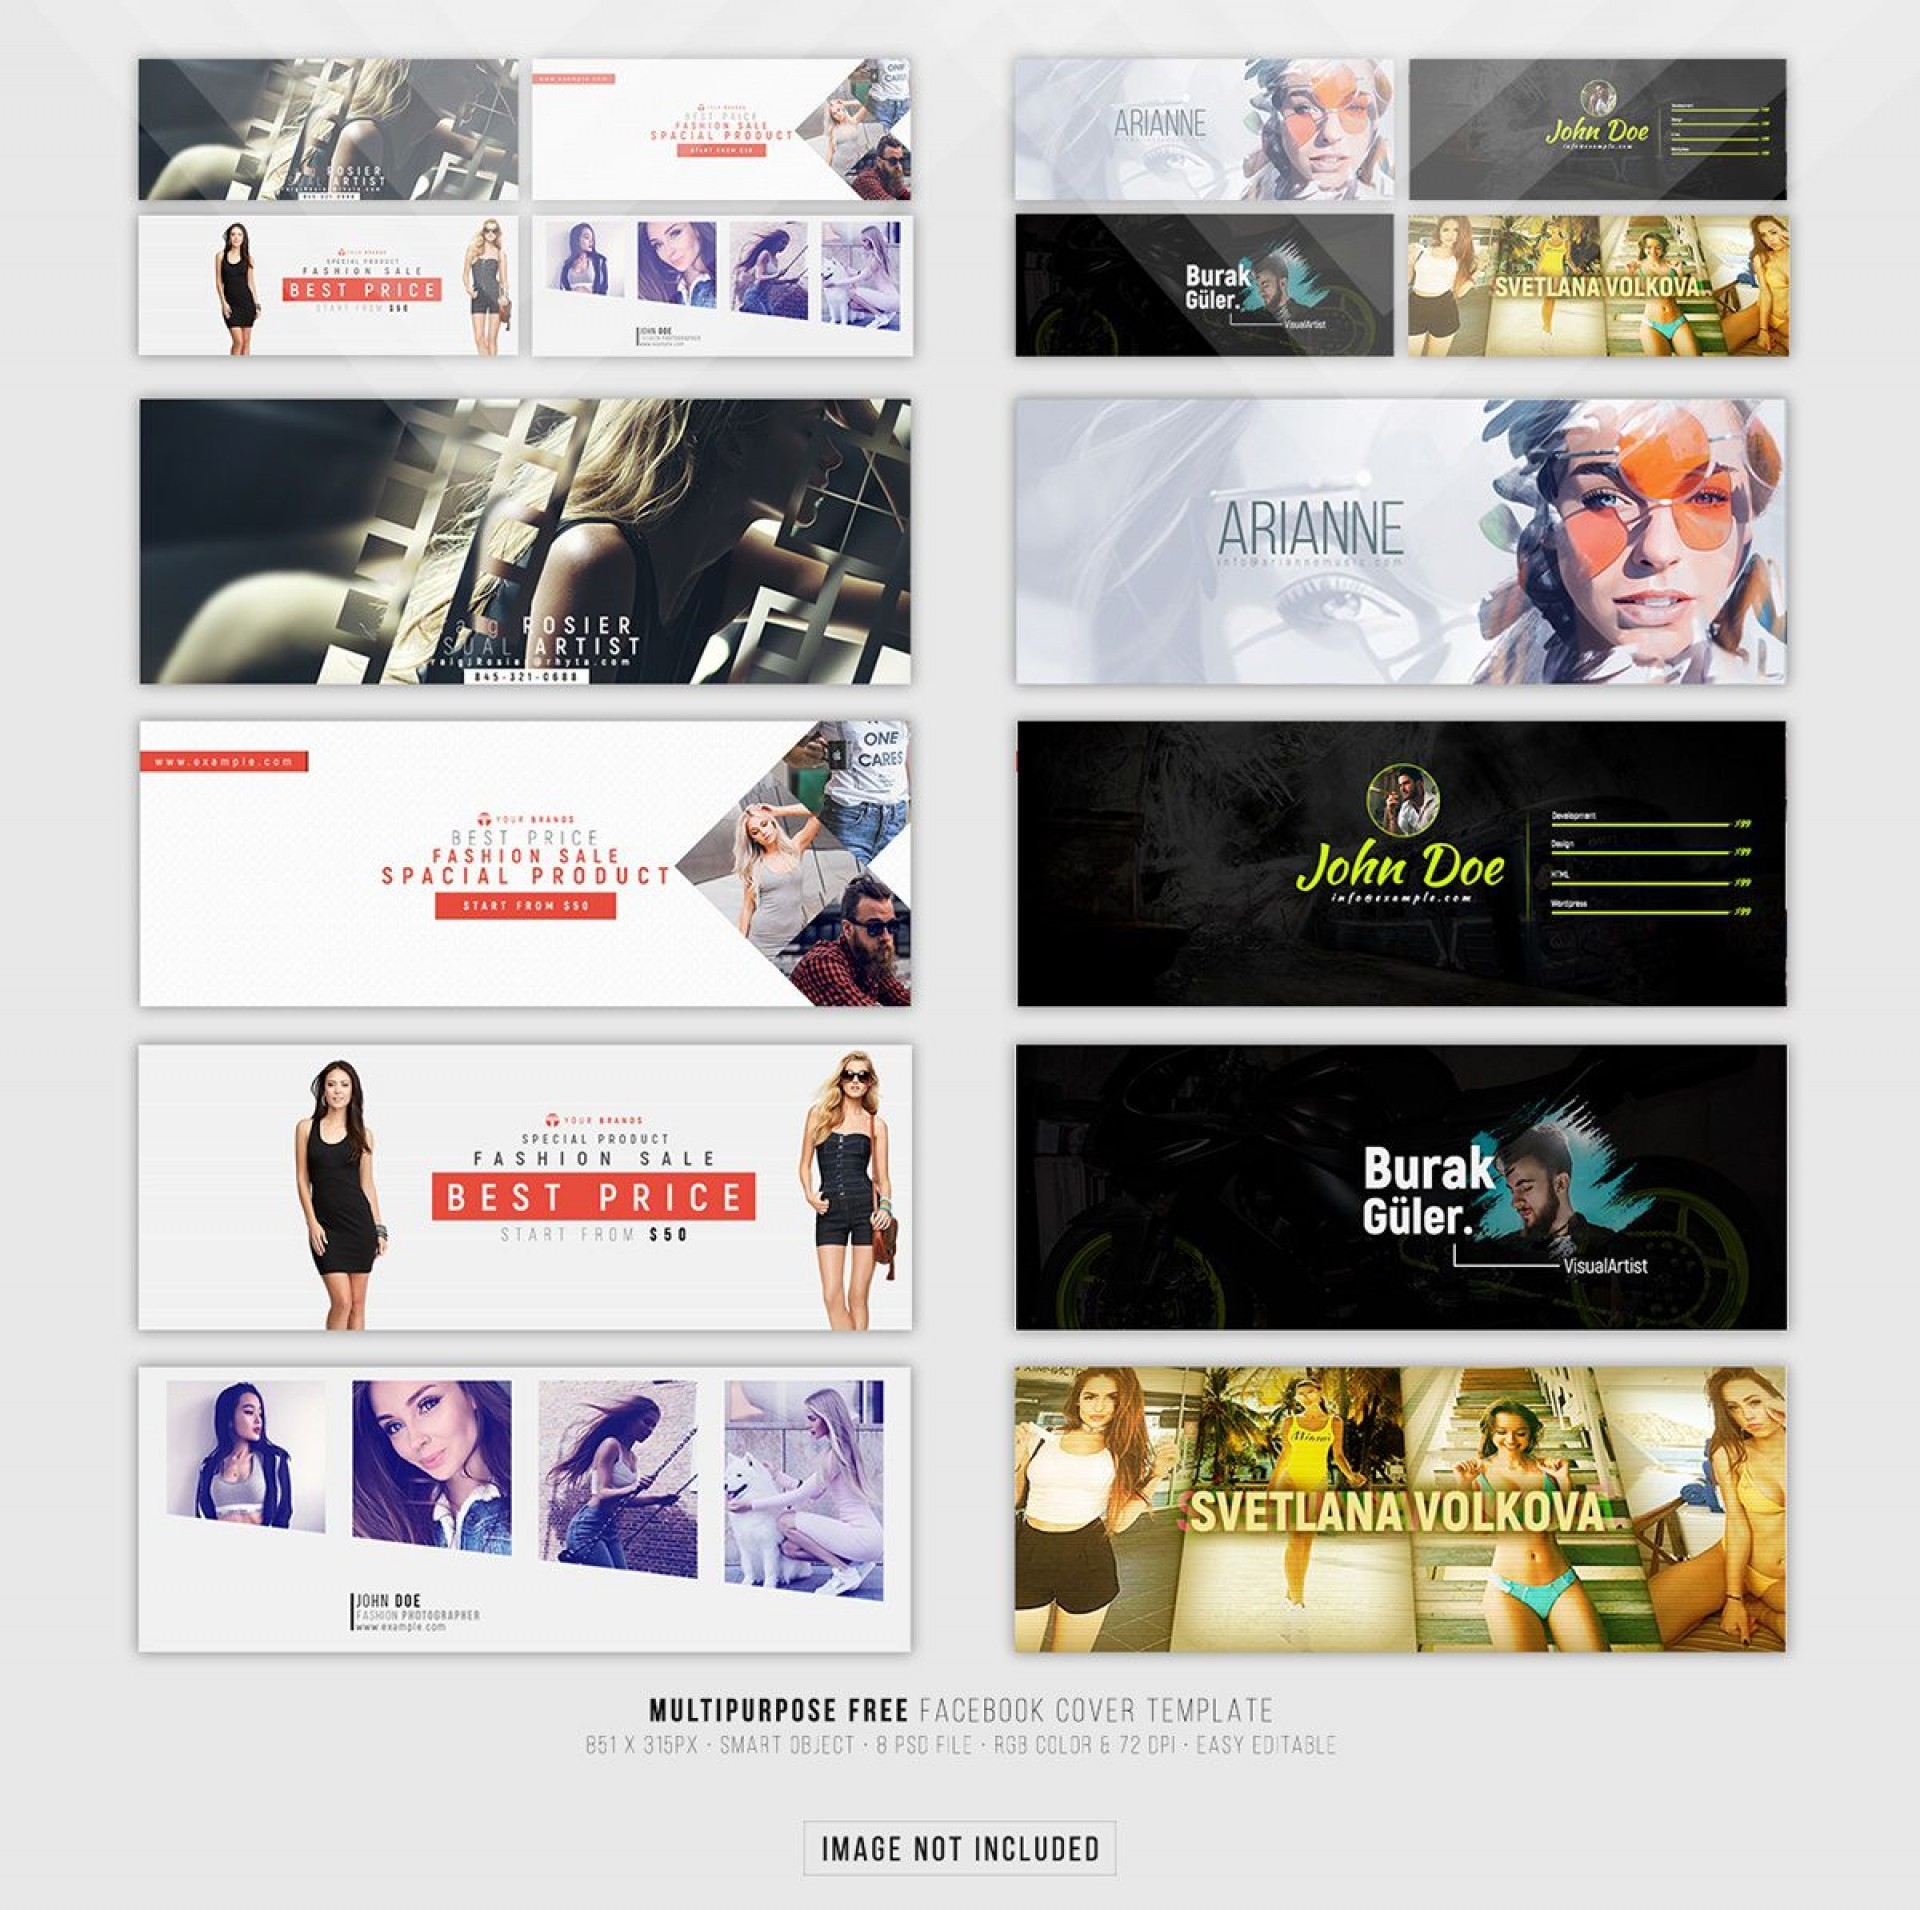 001 Wonderful Free Facebook Cover Template Example  Templates Photoshop1920